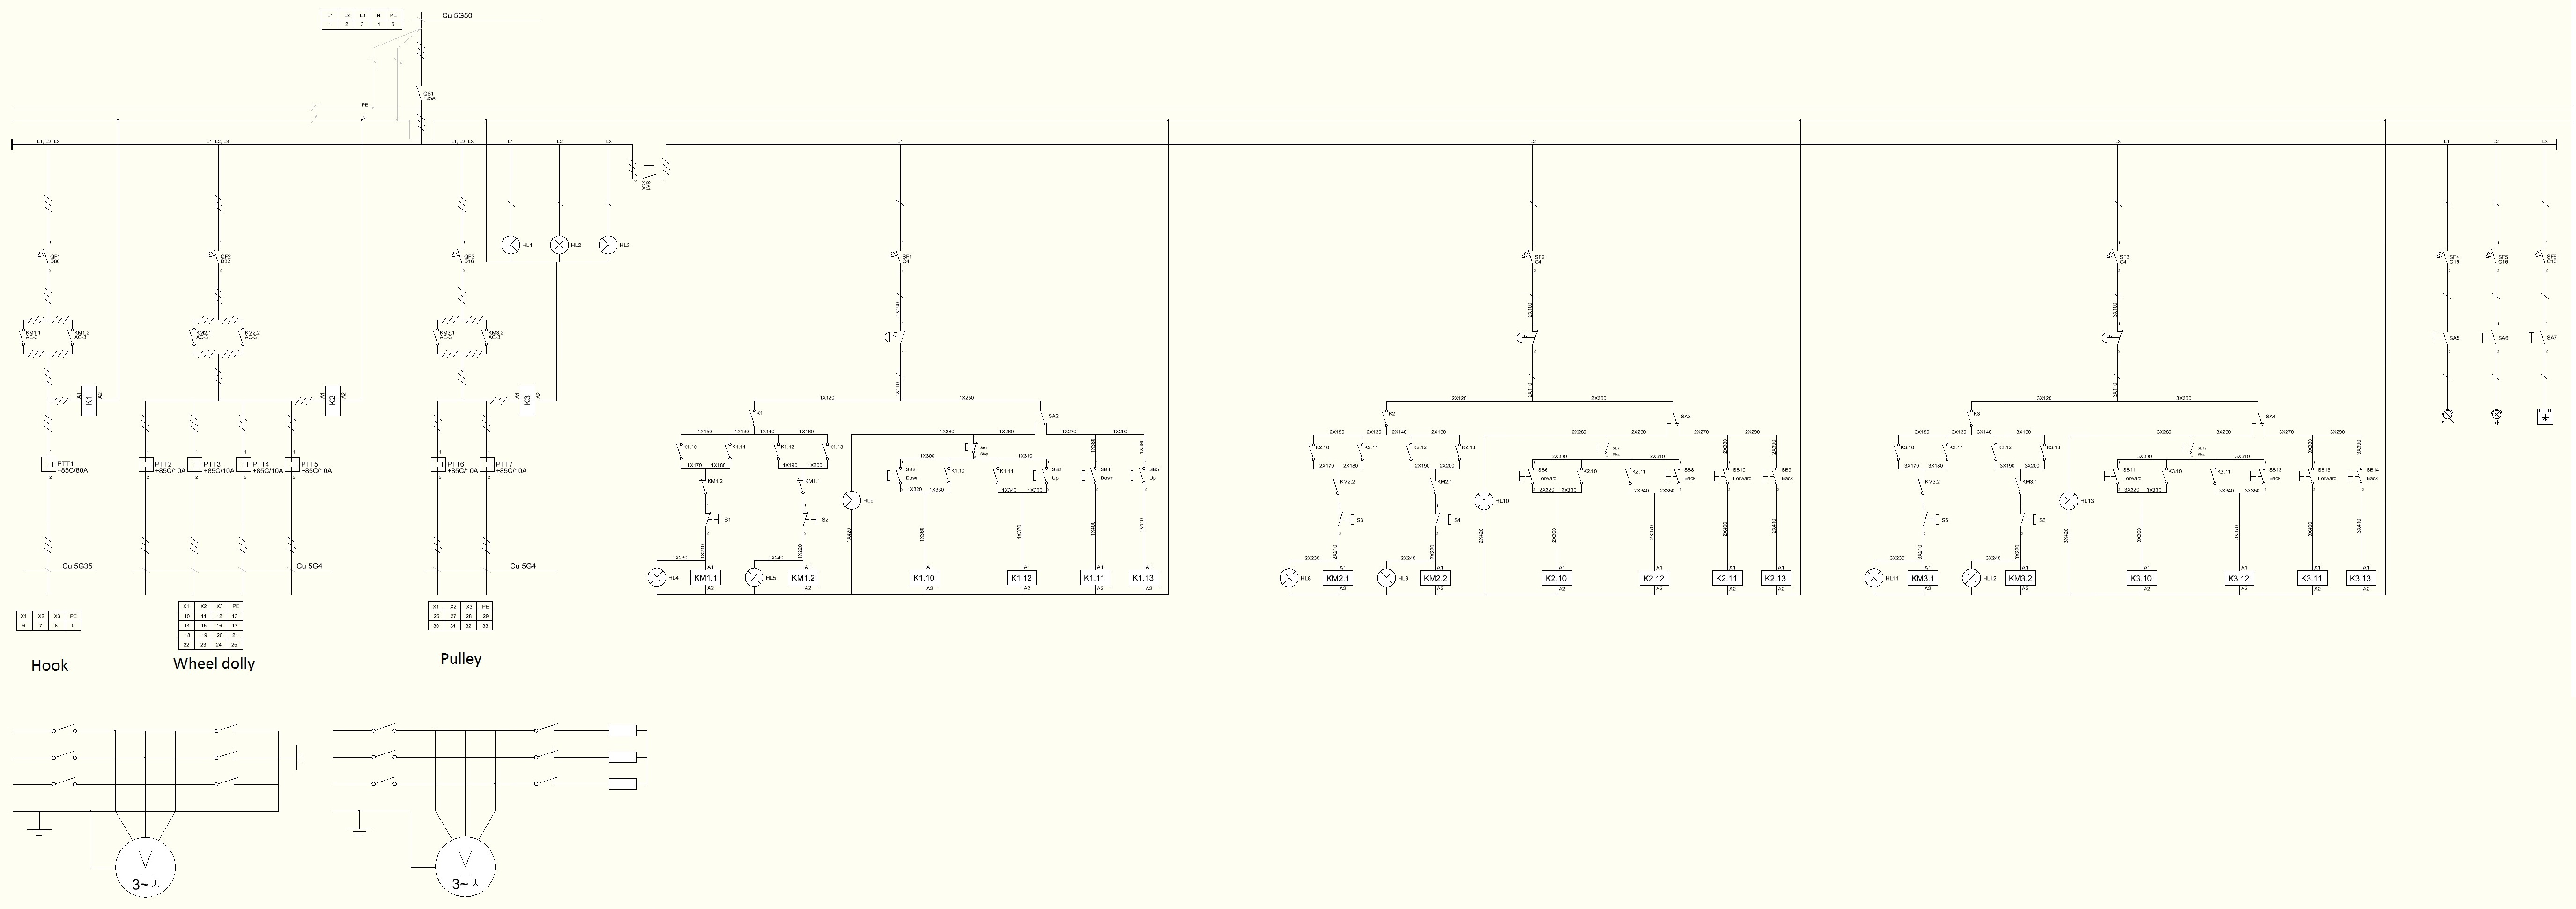 Wiring diagram for hgv trailers free download wiring diagram xwiaw free download wiring diagram high quality images for wiring diagram for hgv trailers of wiring asfbconference2016 Image collections